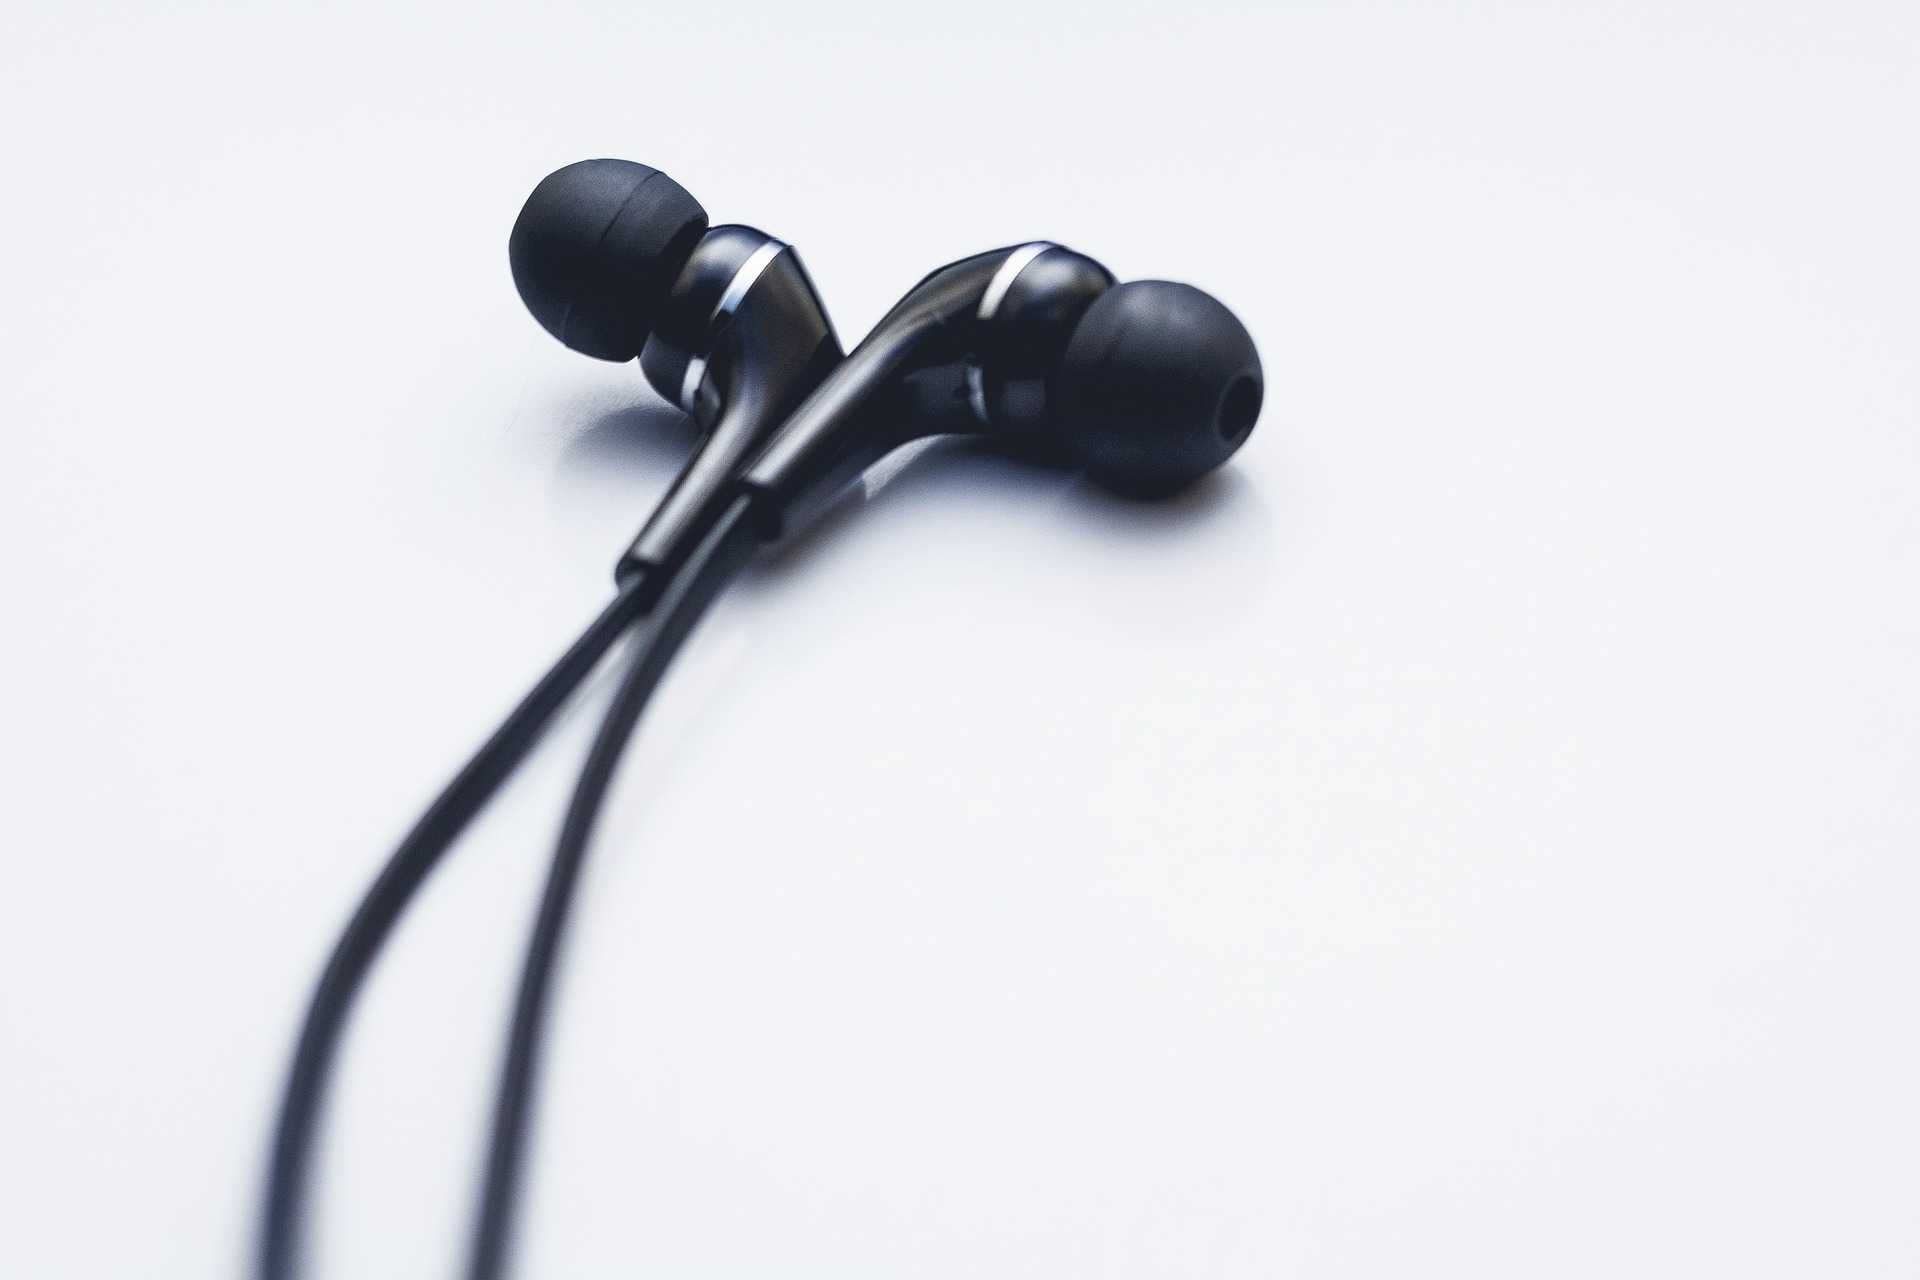 in-ear headphones or earbuds or earphones